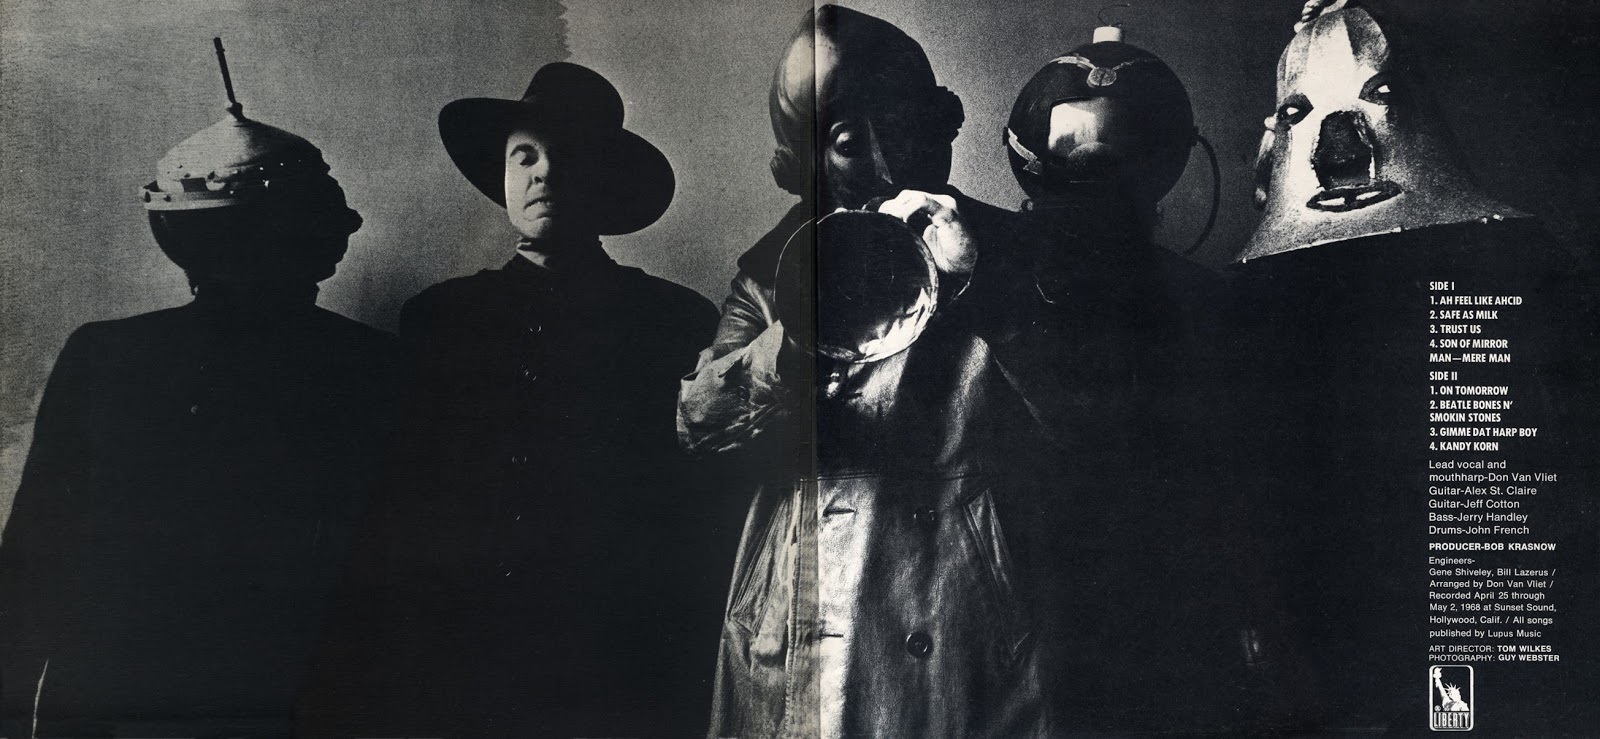 Captain Beefheart And His Magic Band - Ice Cream For Crow